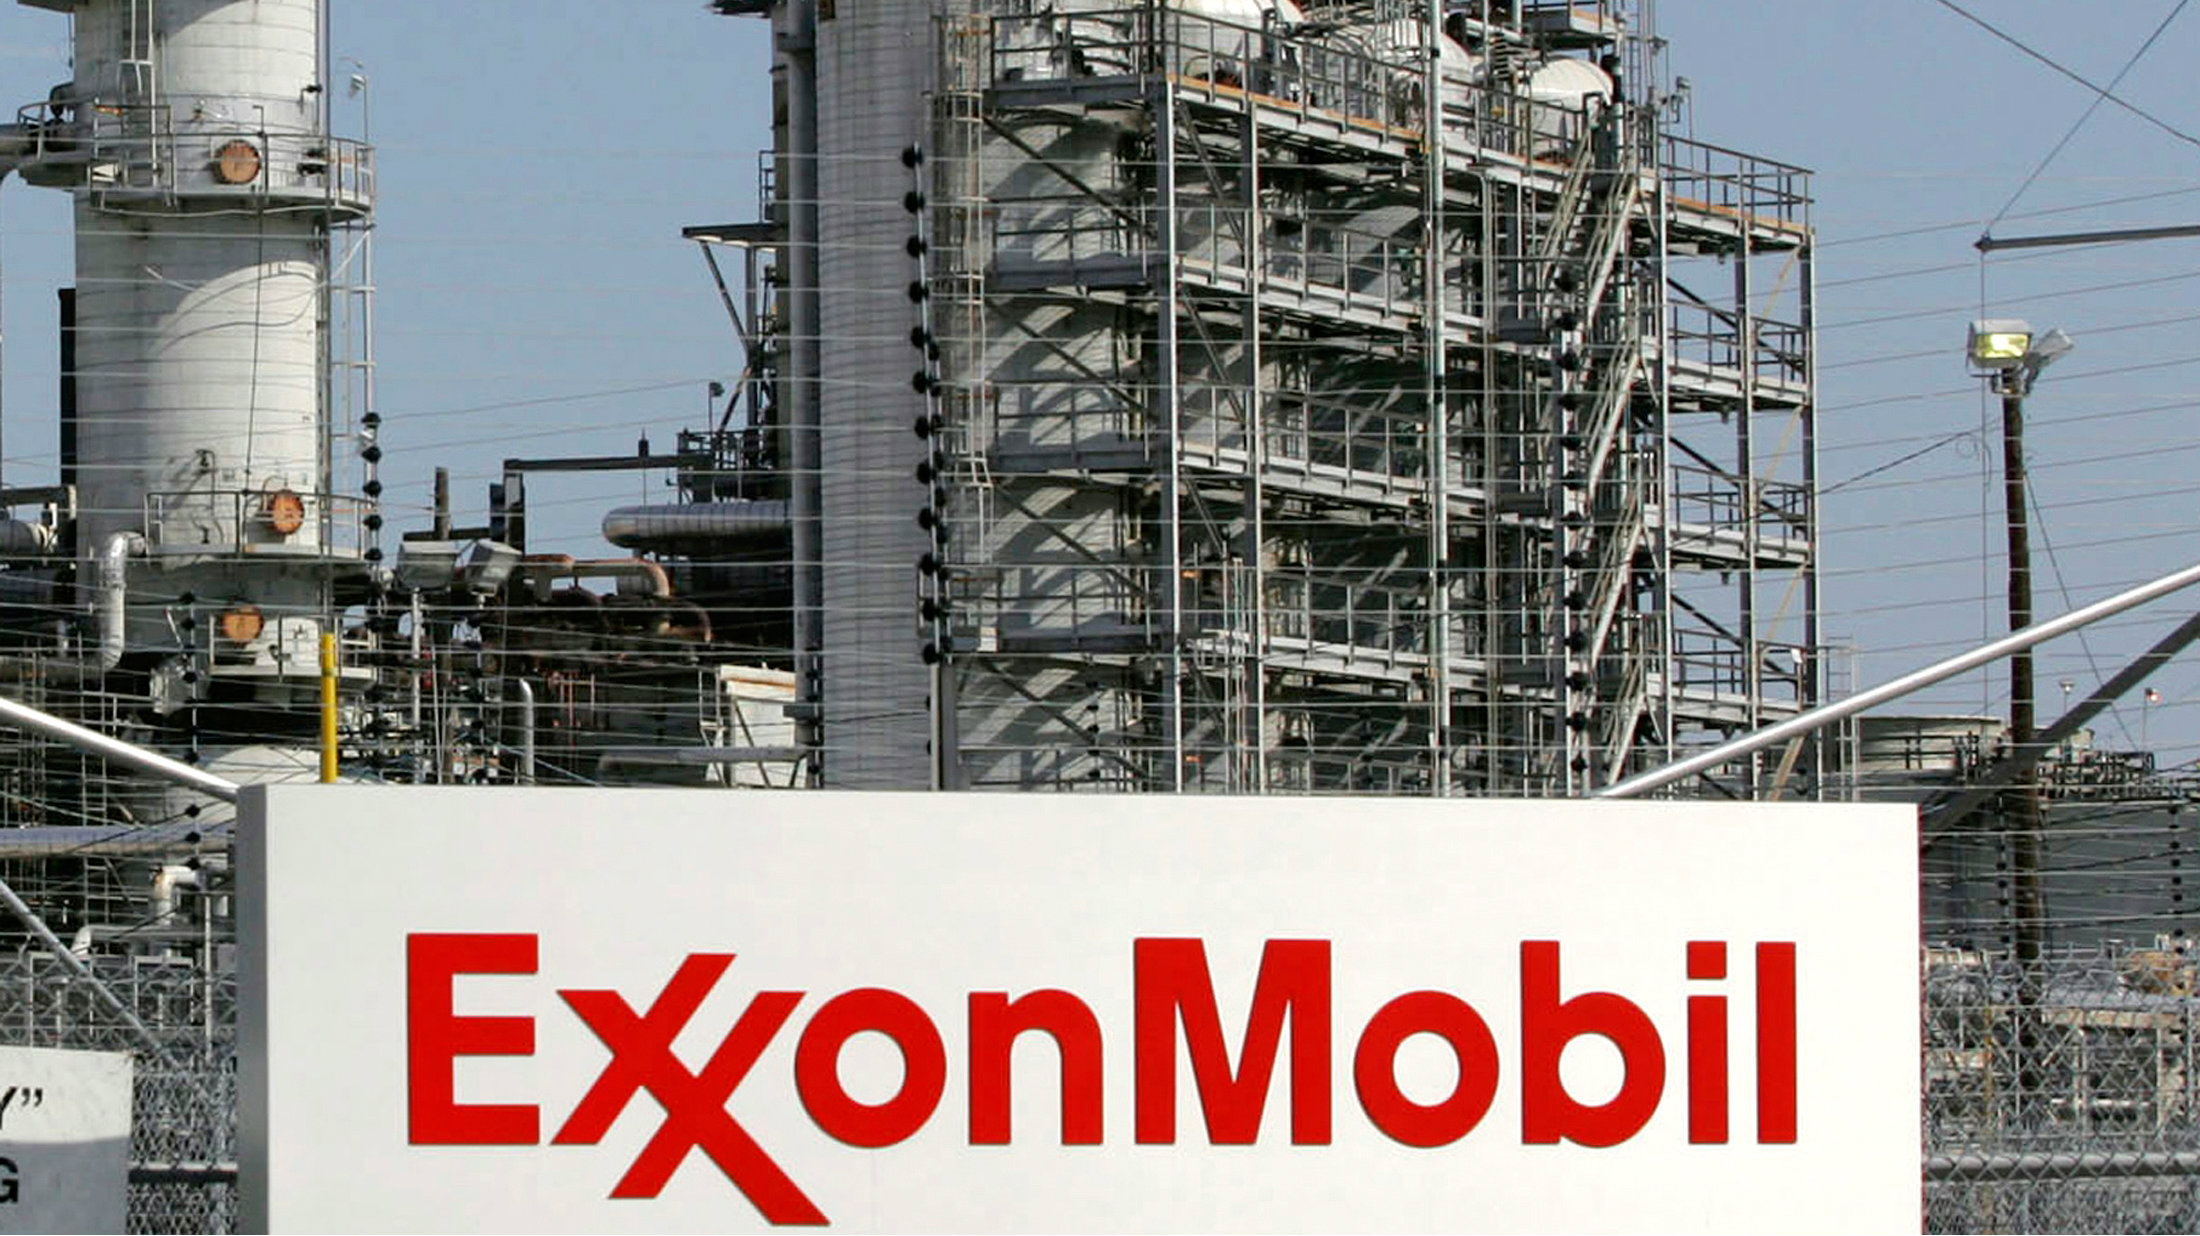 What did ExxonMobil know and when did it know it?